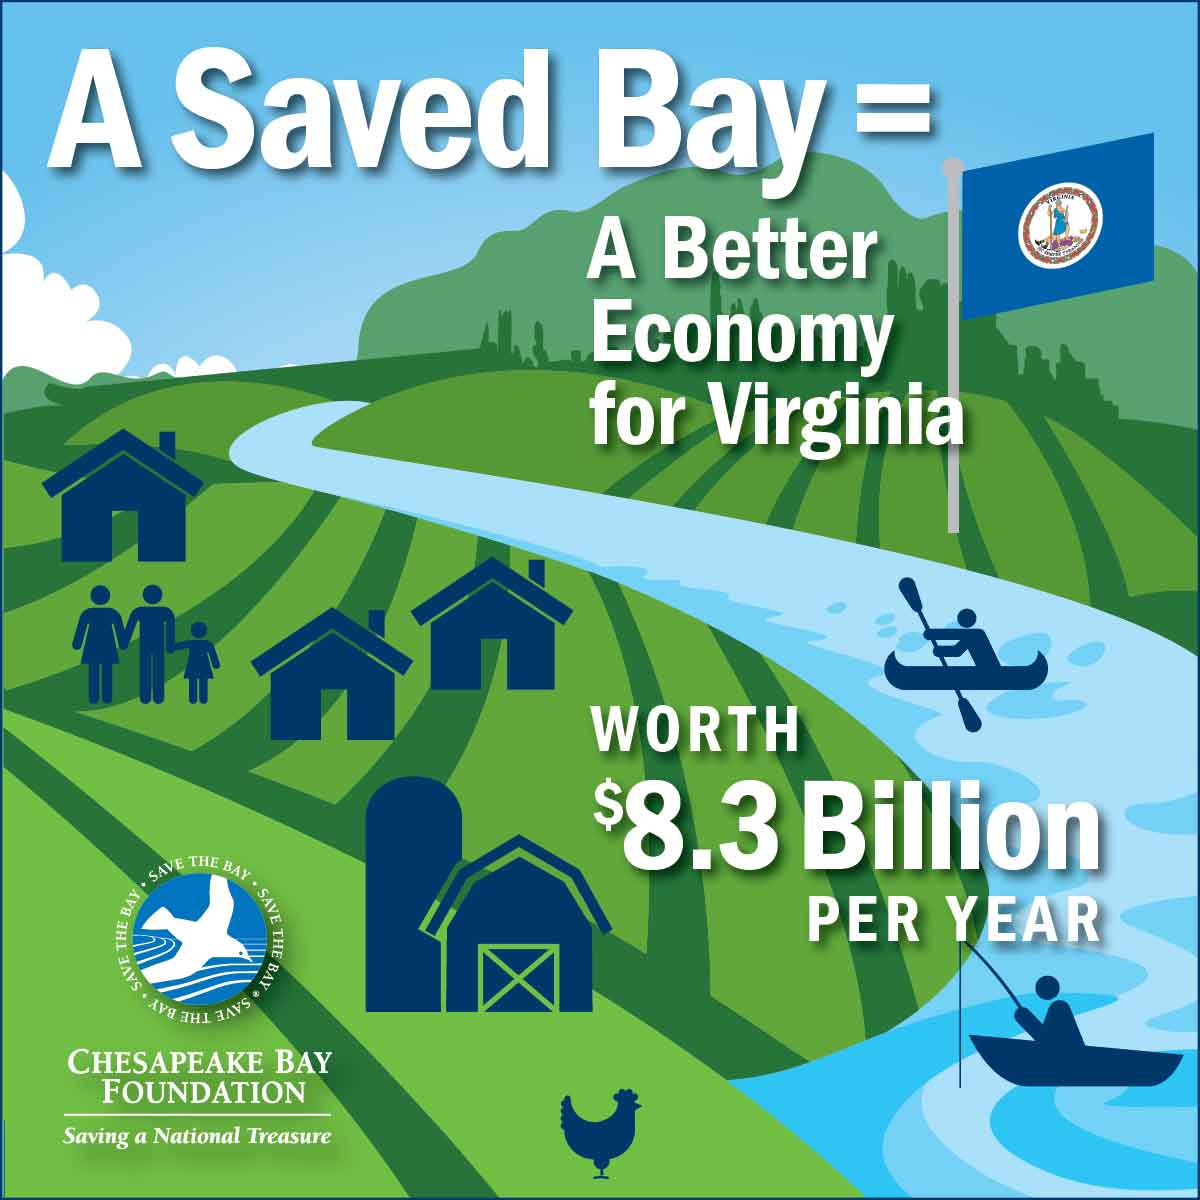 A Saved Bay = A Better Economy for Virginia worth $8.3 Billion per year